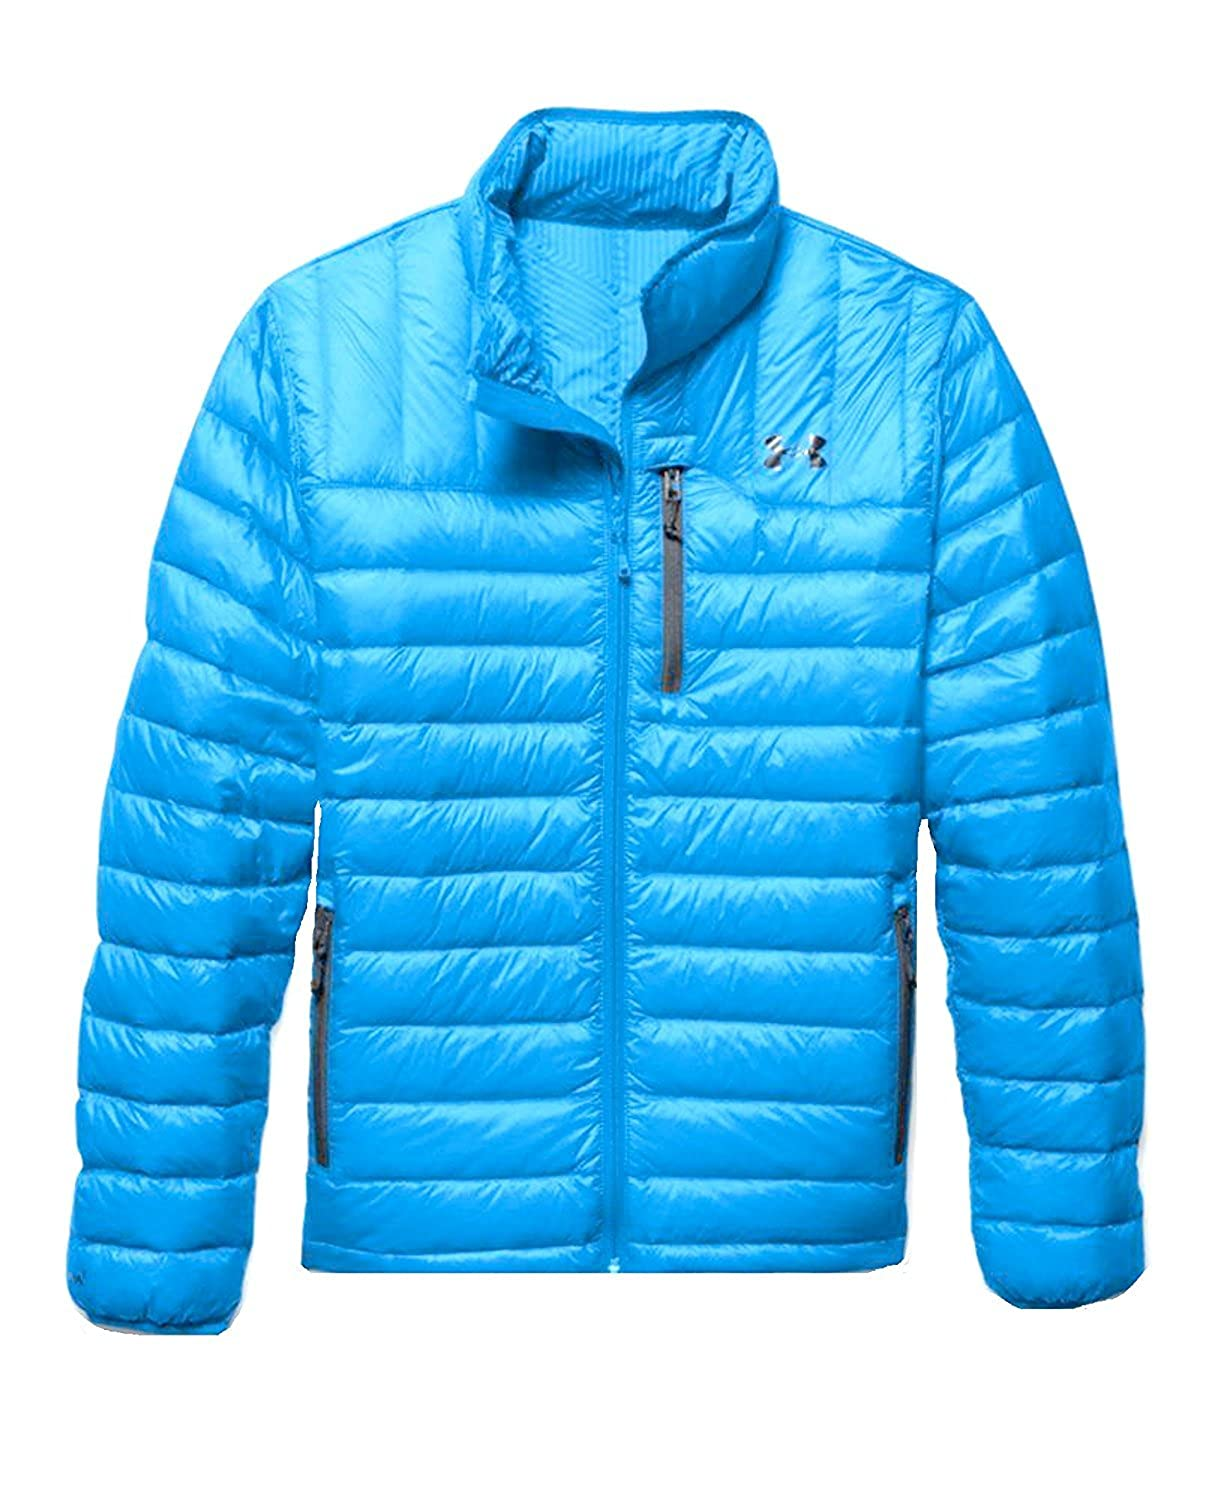 93caf81ee7 Under Armour Men's Down Packable Water Resistant Puffer Jacket at ...